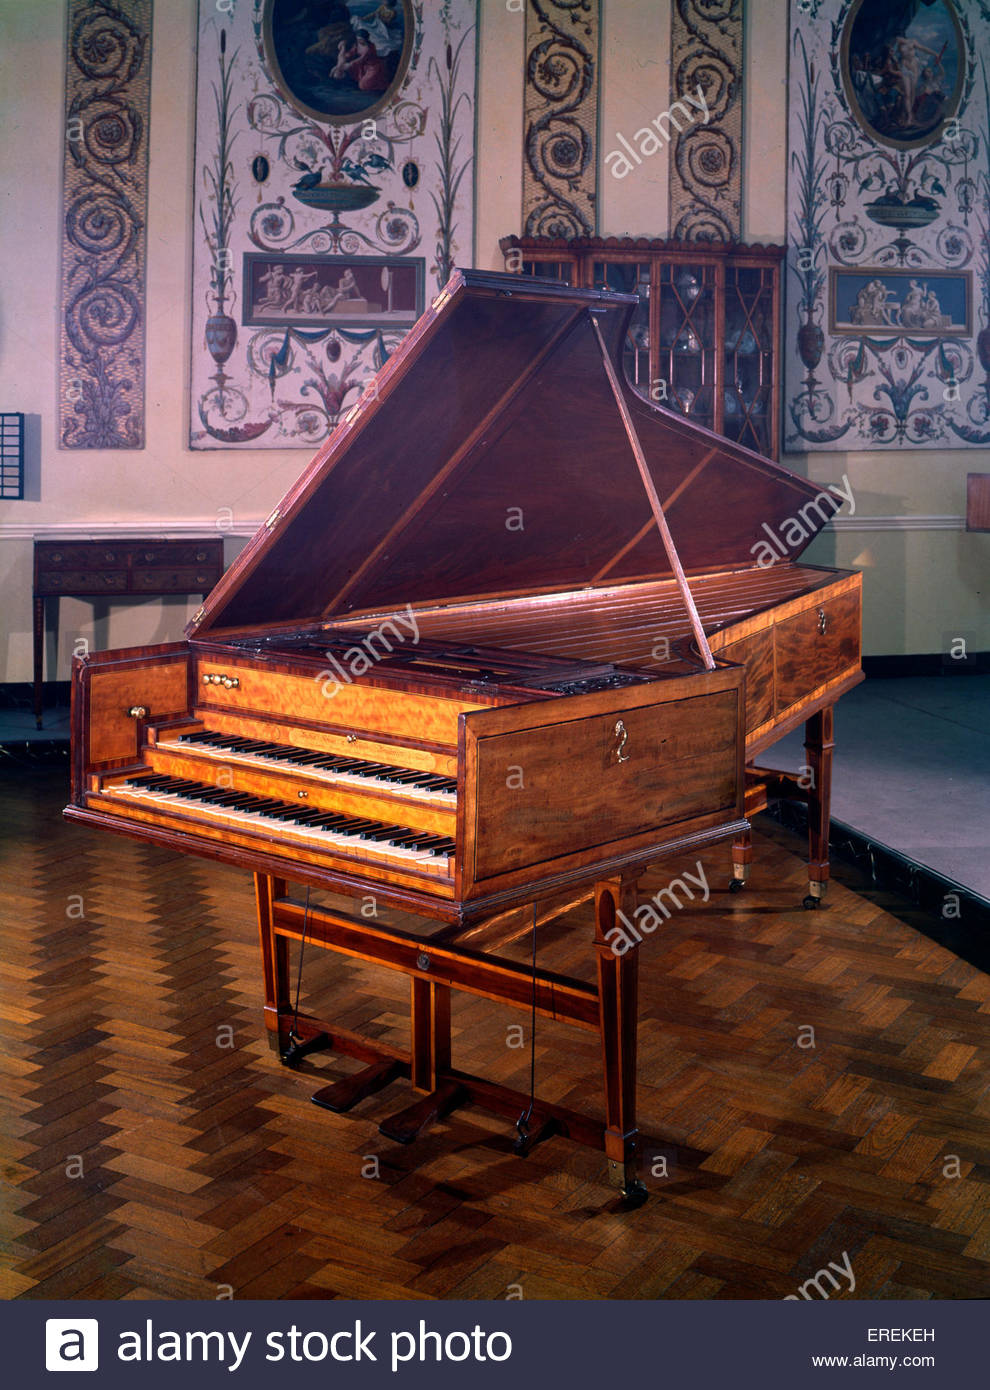 Harpsichord, made by Shudi (Tschudi) & Broadwood, England, 1782. (V&A Museum, London). - Stock Image